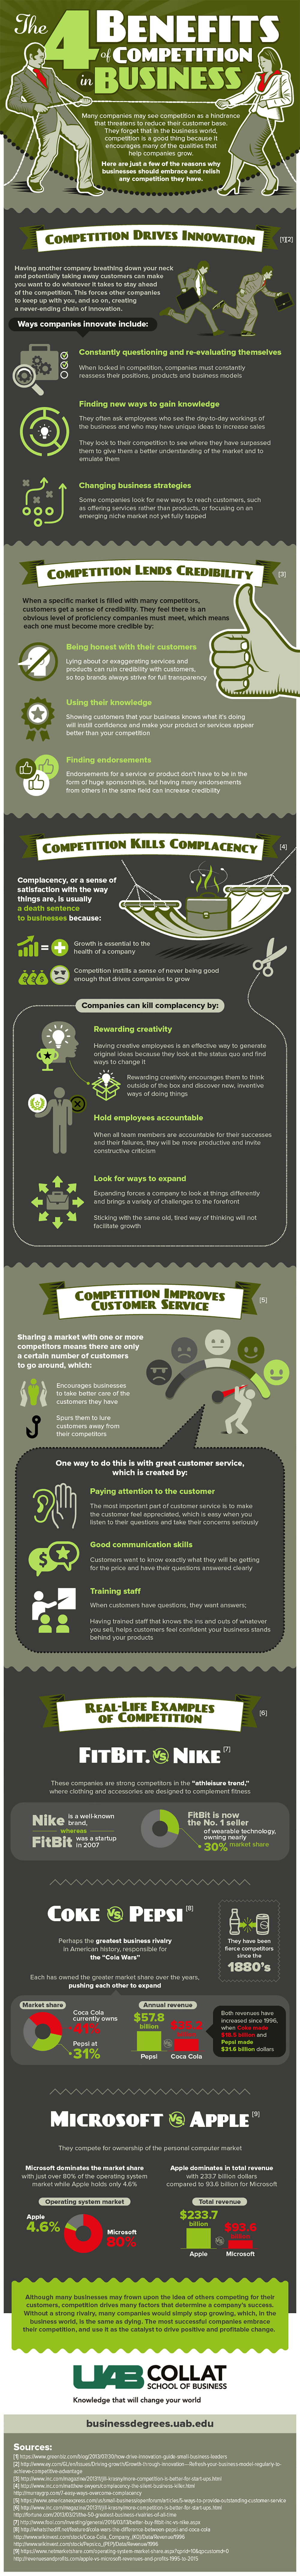 An infographic about the benefits of business competition by UAB Collat School of Business.